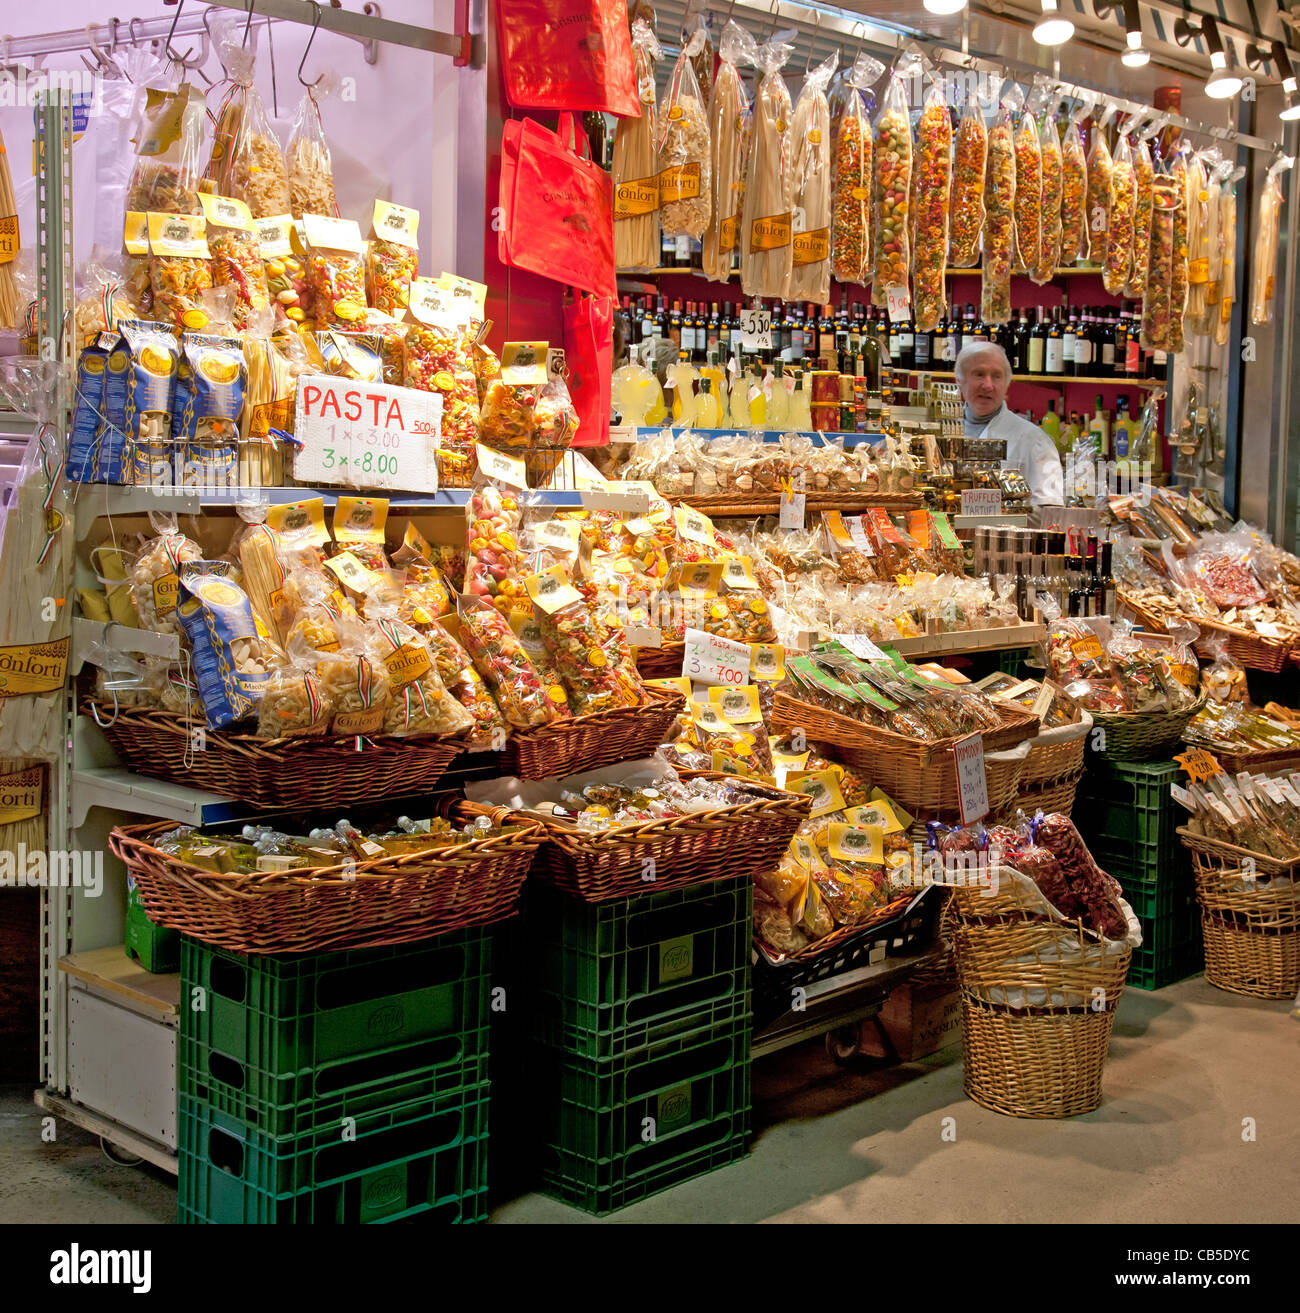 Food stall in the Mercato Centrale, Florence, selling various pastas, also dried tomatoes, herbs,  wine and Limoncello - Stock Image